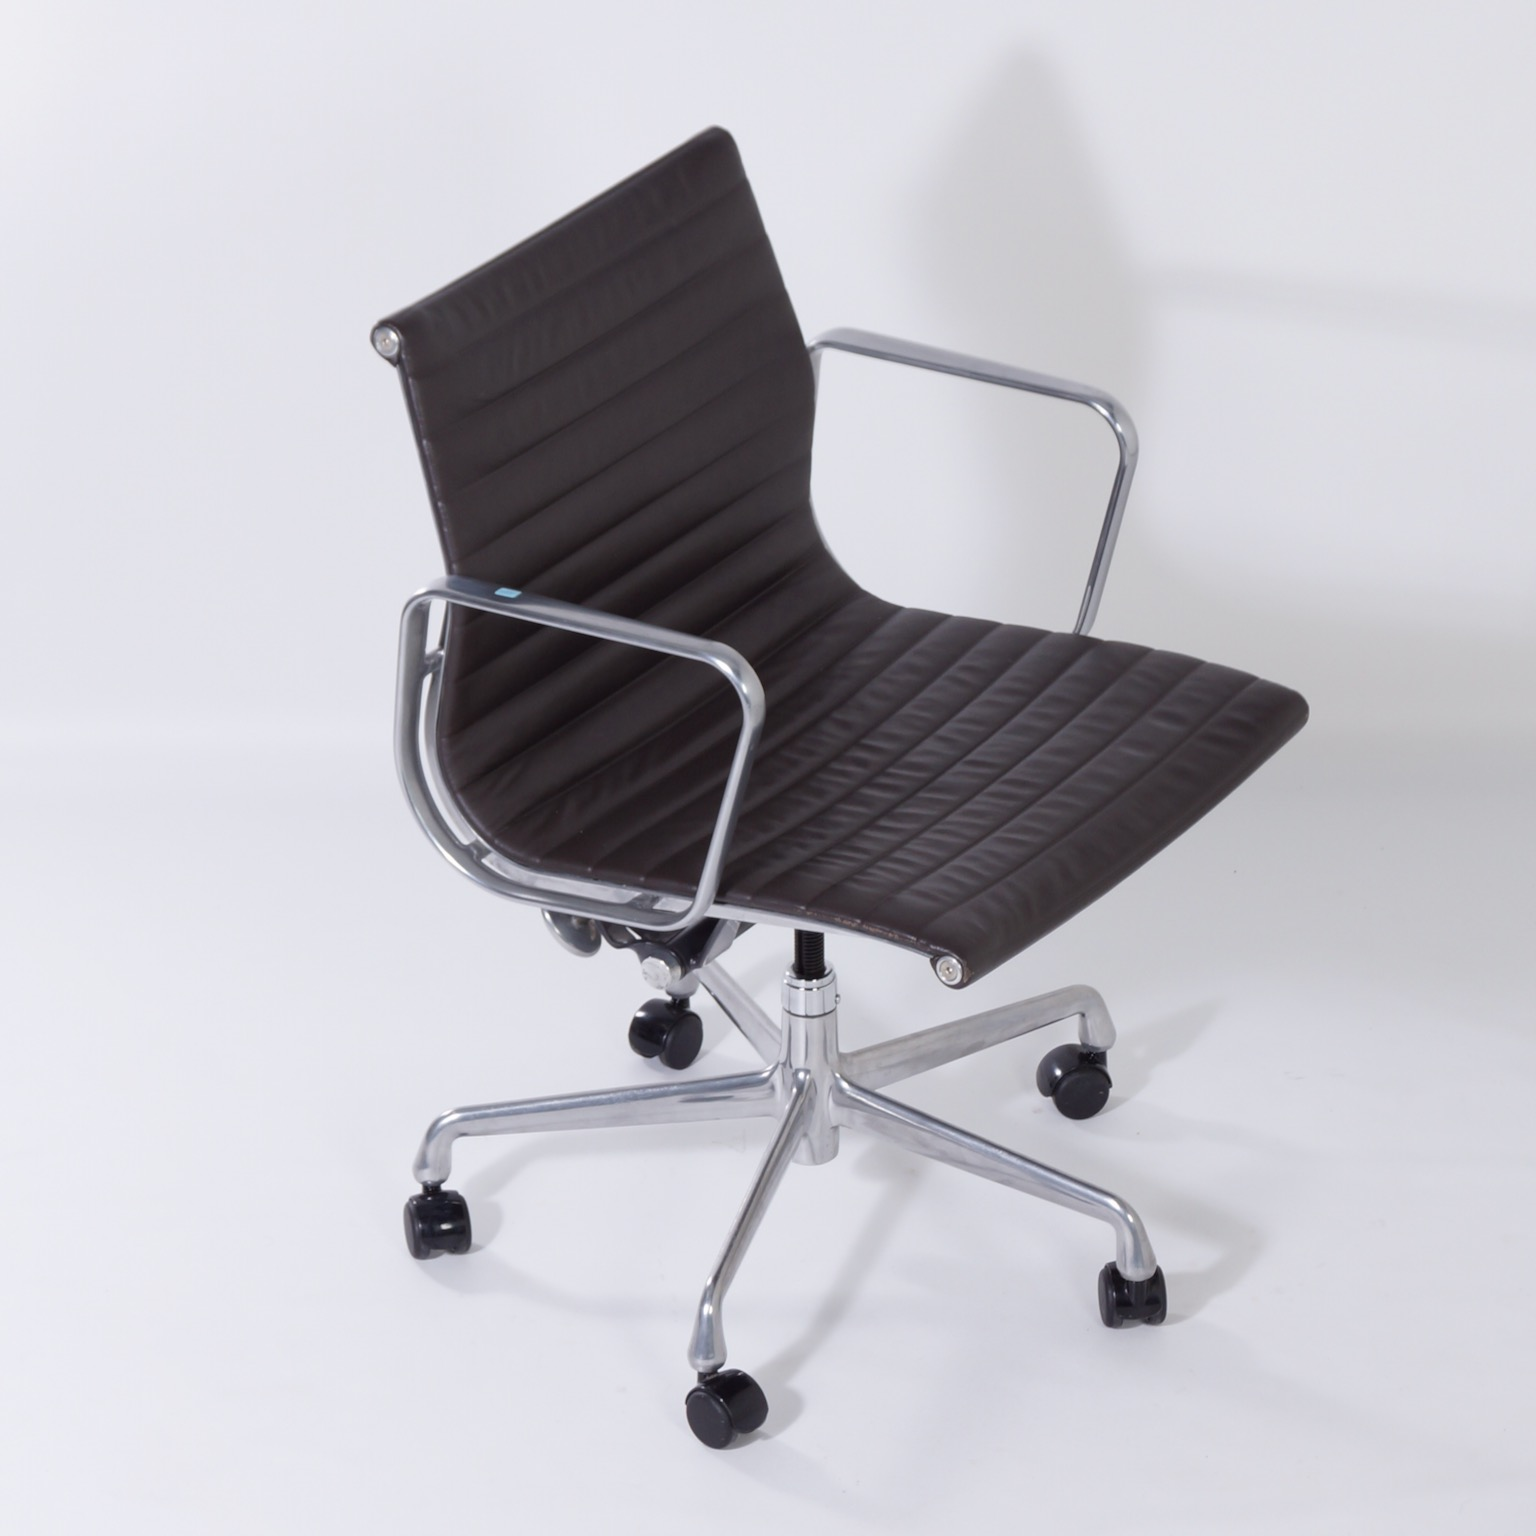 Ea335 Office Chair By Charles Ray Eames For Herman Miller 2000s Special Edition Brown Leather